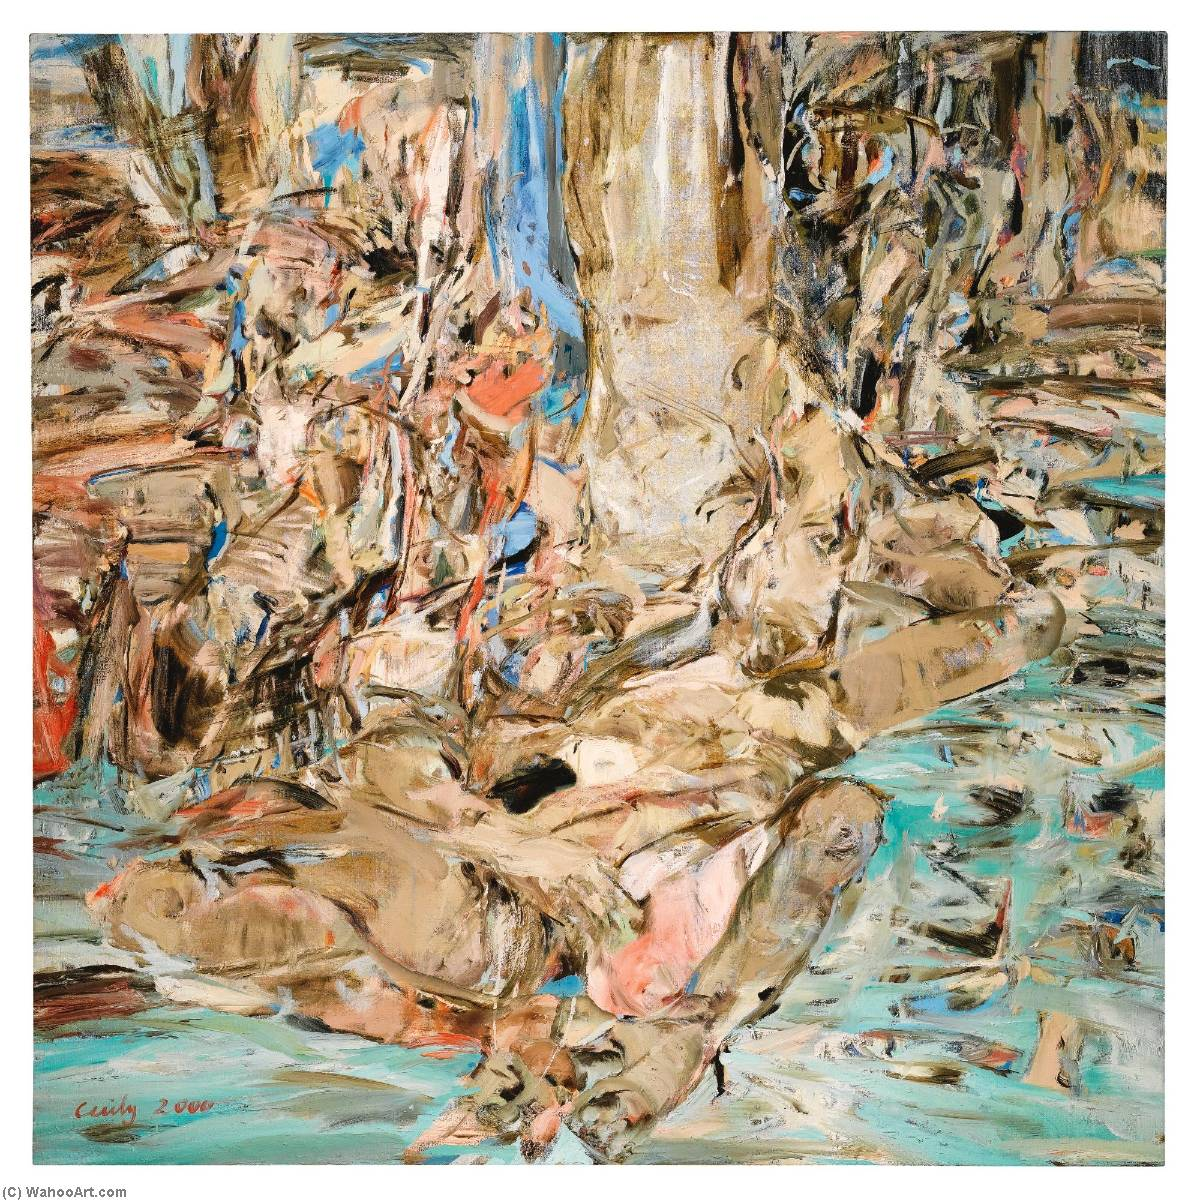 Summerstorm, Oil On Canvas by Cecily Brown